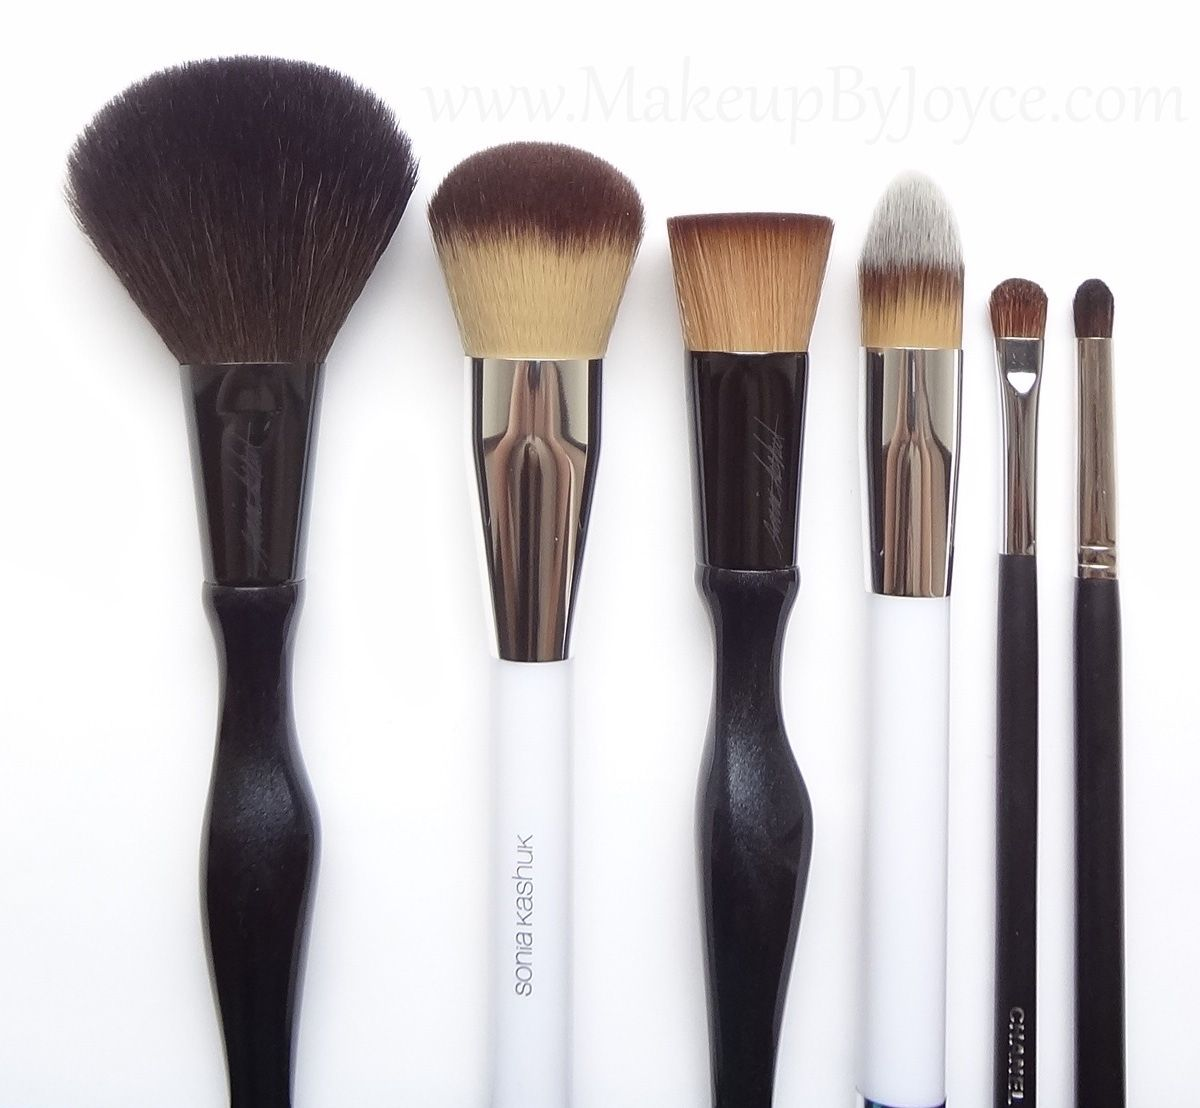 From Left to Right Sonia Kashuk Large Powder Brush, Sonia